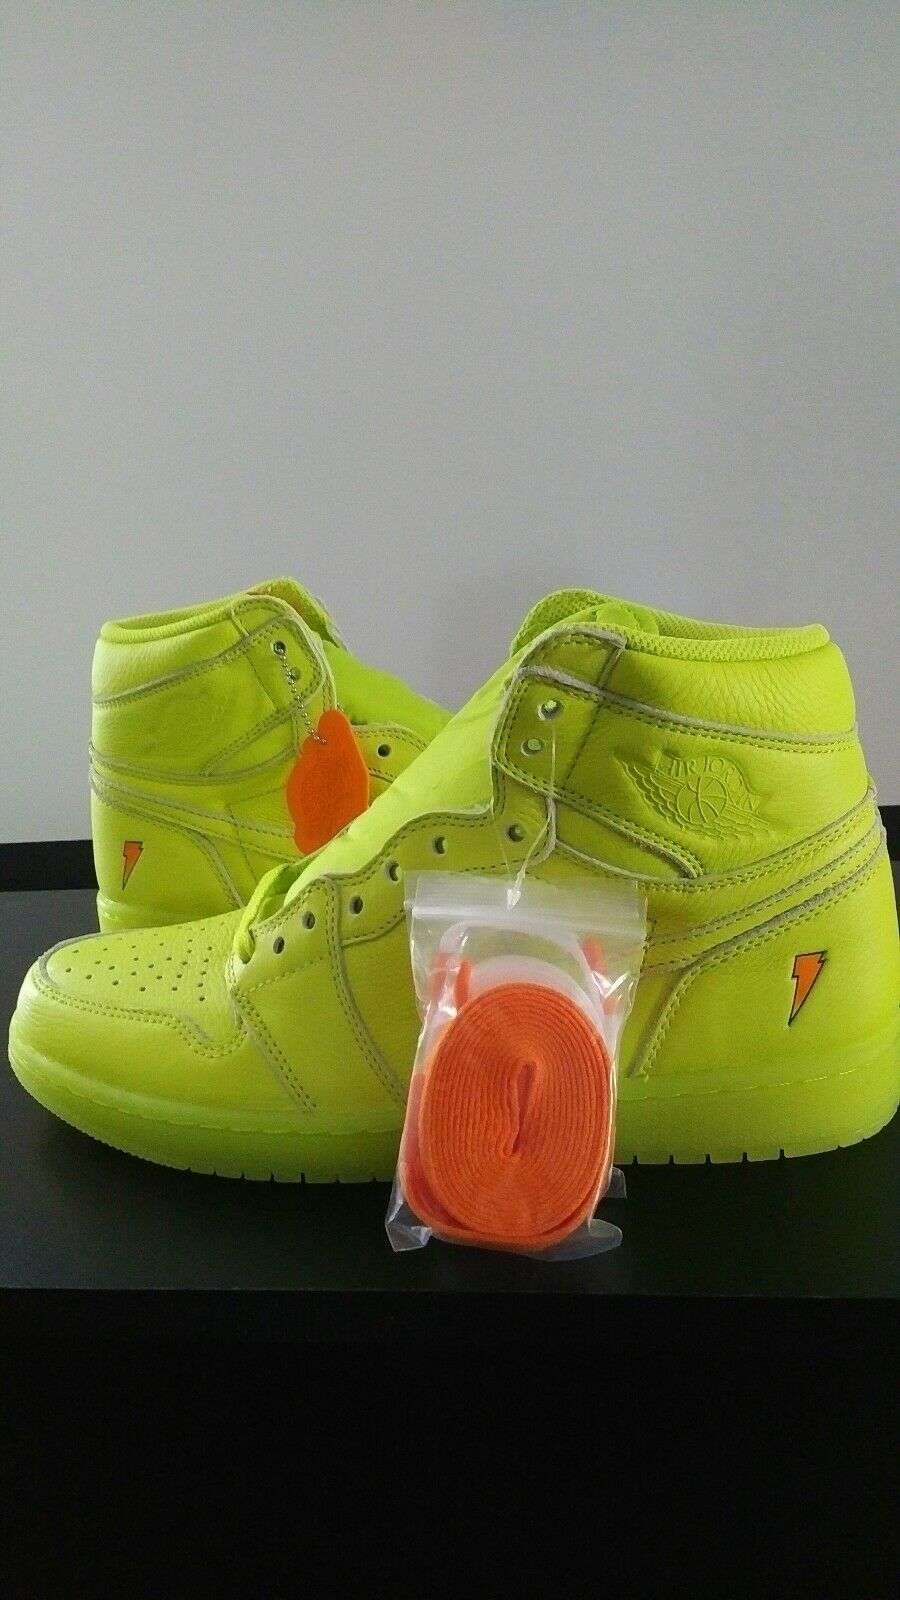 2017 Nike Air Jordan Retro 1 Gatorade Lemon Lime size 9.5 men AJ5997-345